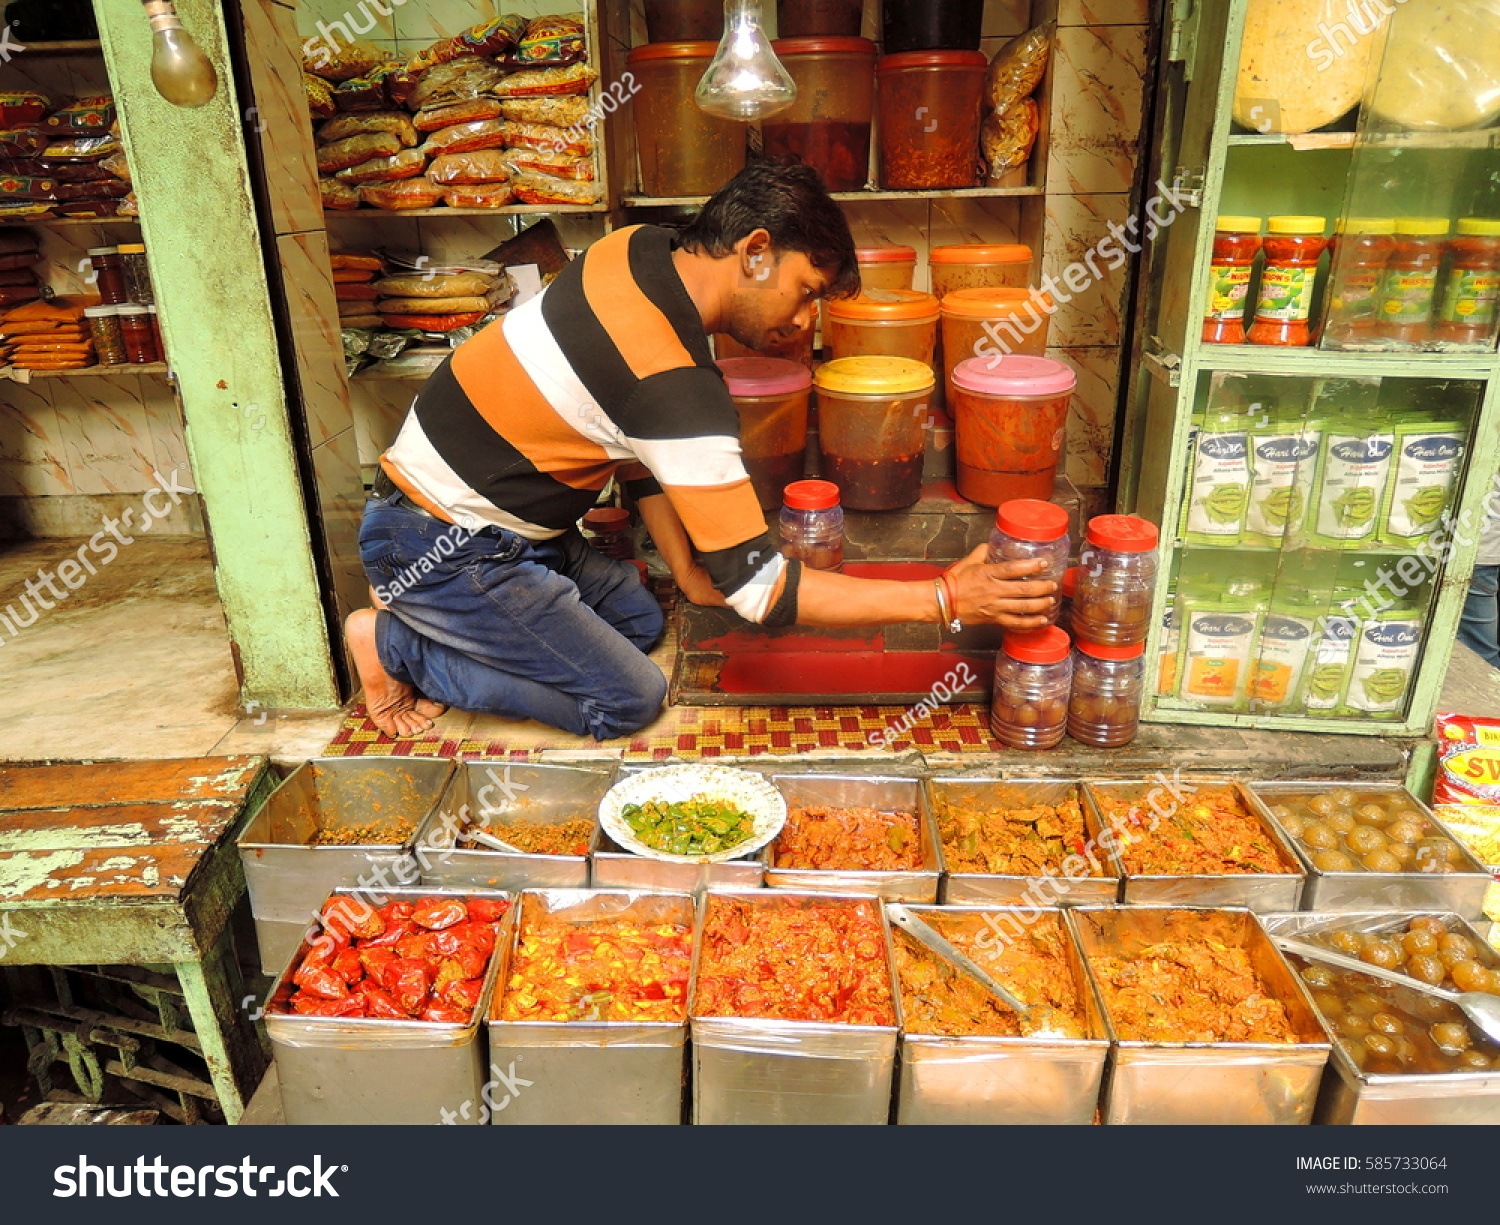 Man who sells atchar on the streets says his business has grown